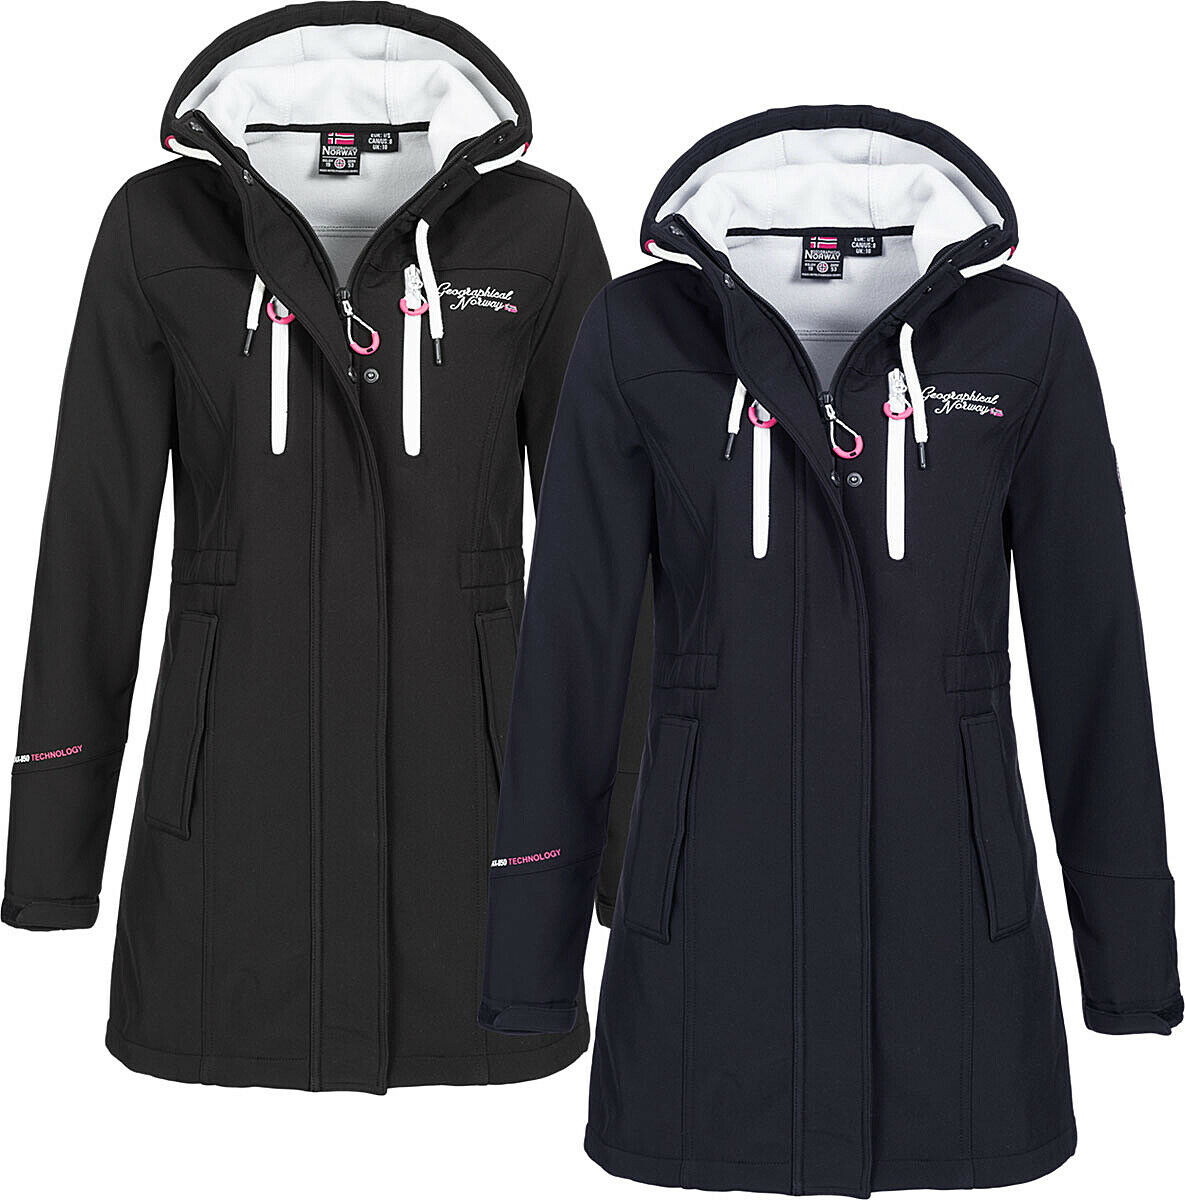 Geographical Norway Damen Herbst Softshell Jacke Parka winter Soft shell Jacke